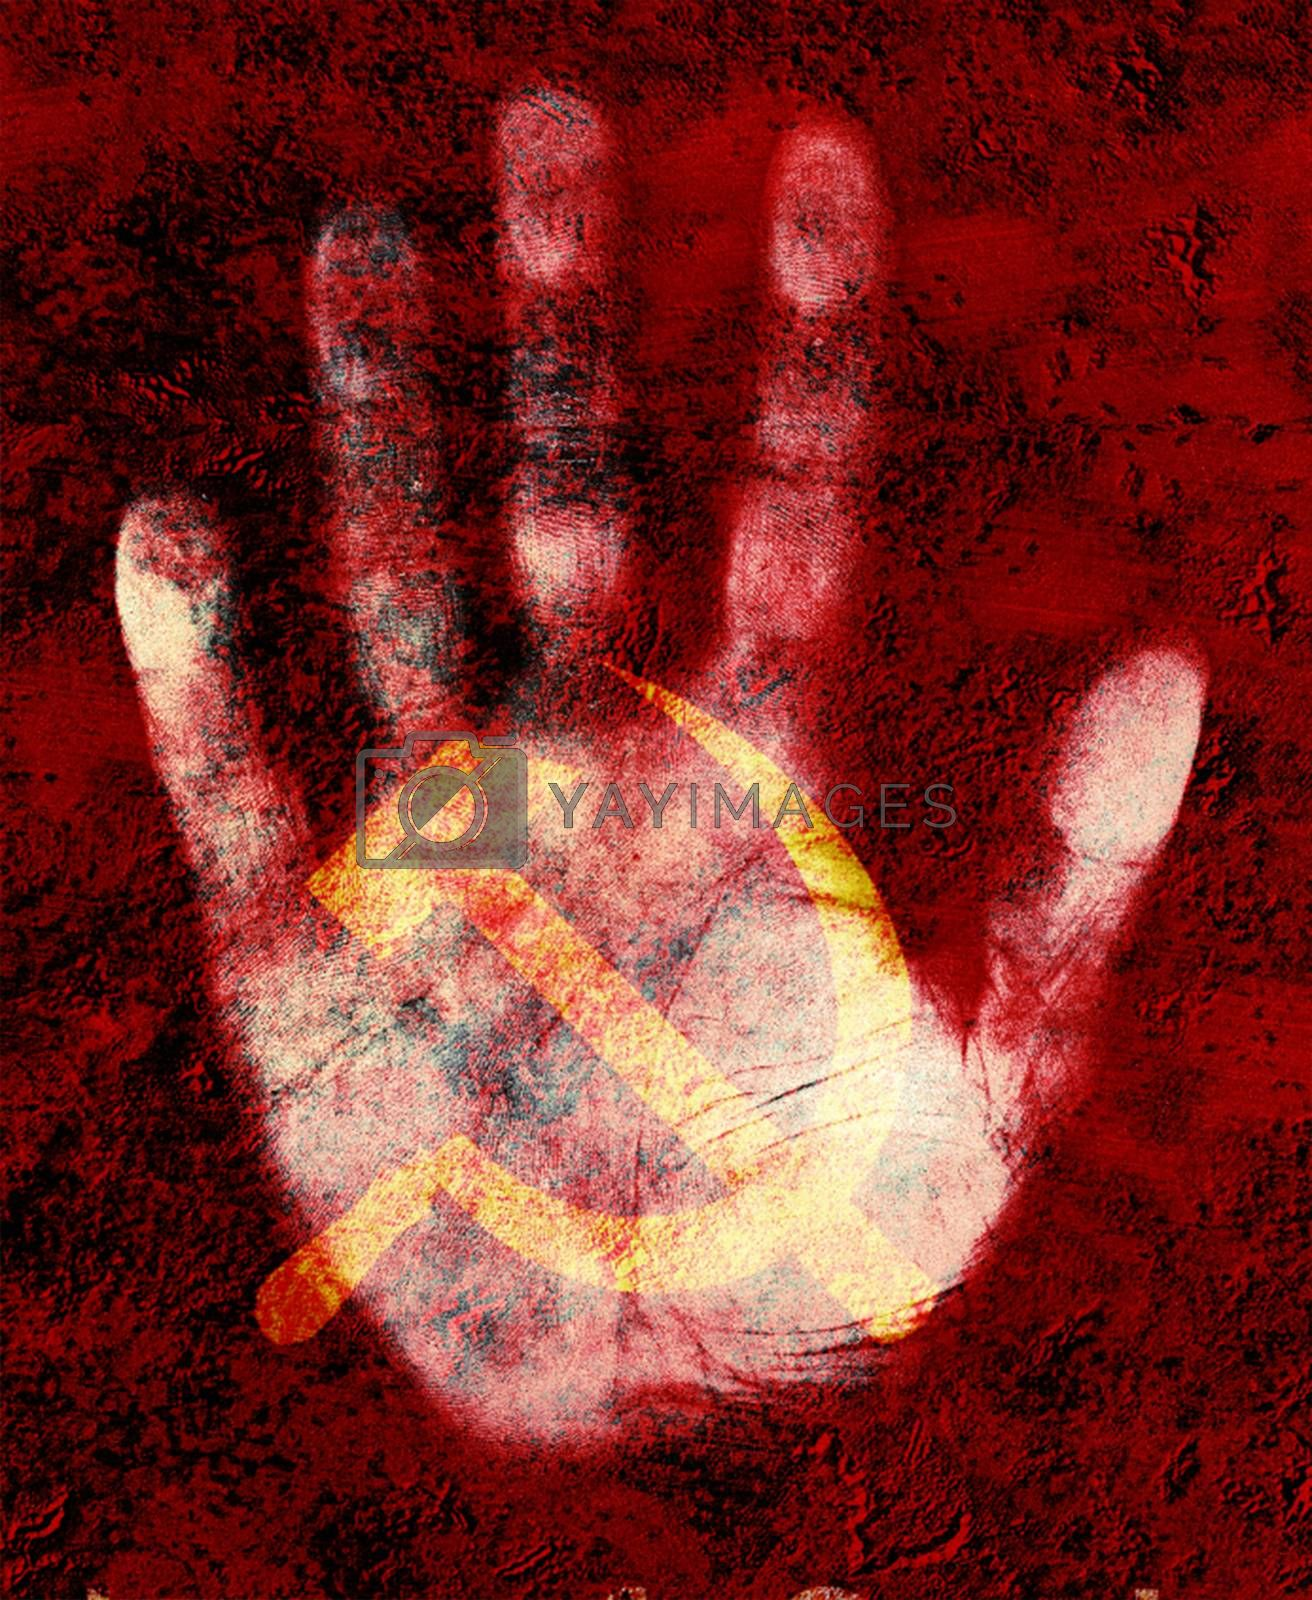 USSR symbol. Hammer and sickle on human palm. 3D rendering